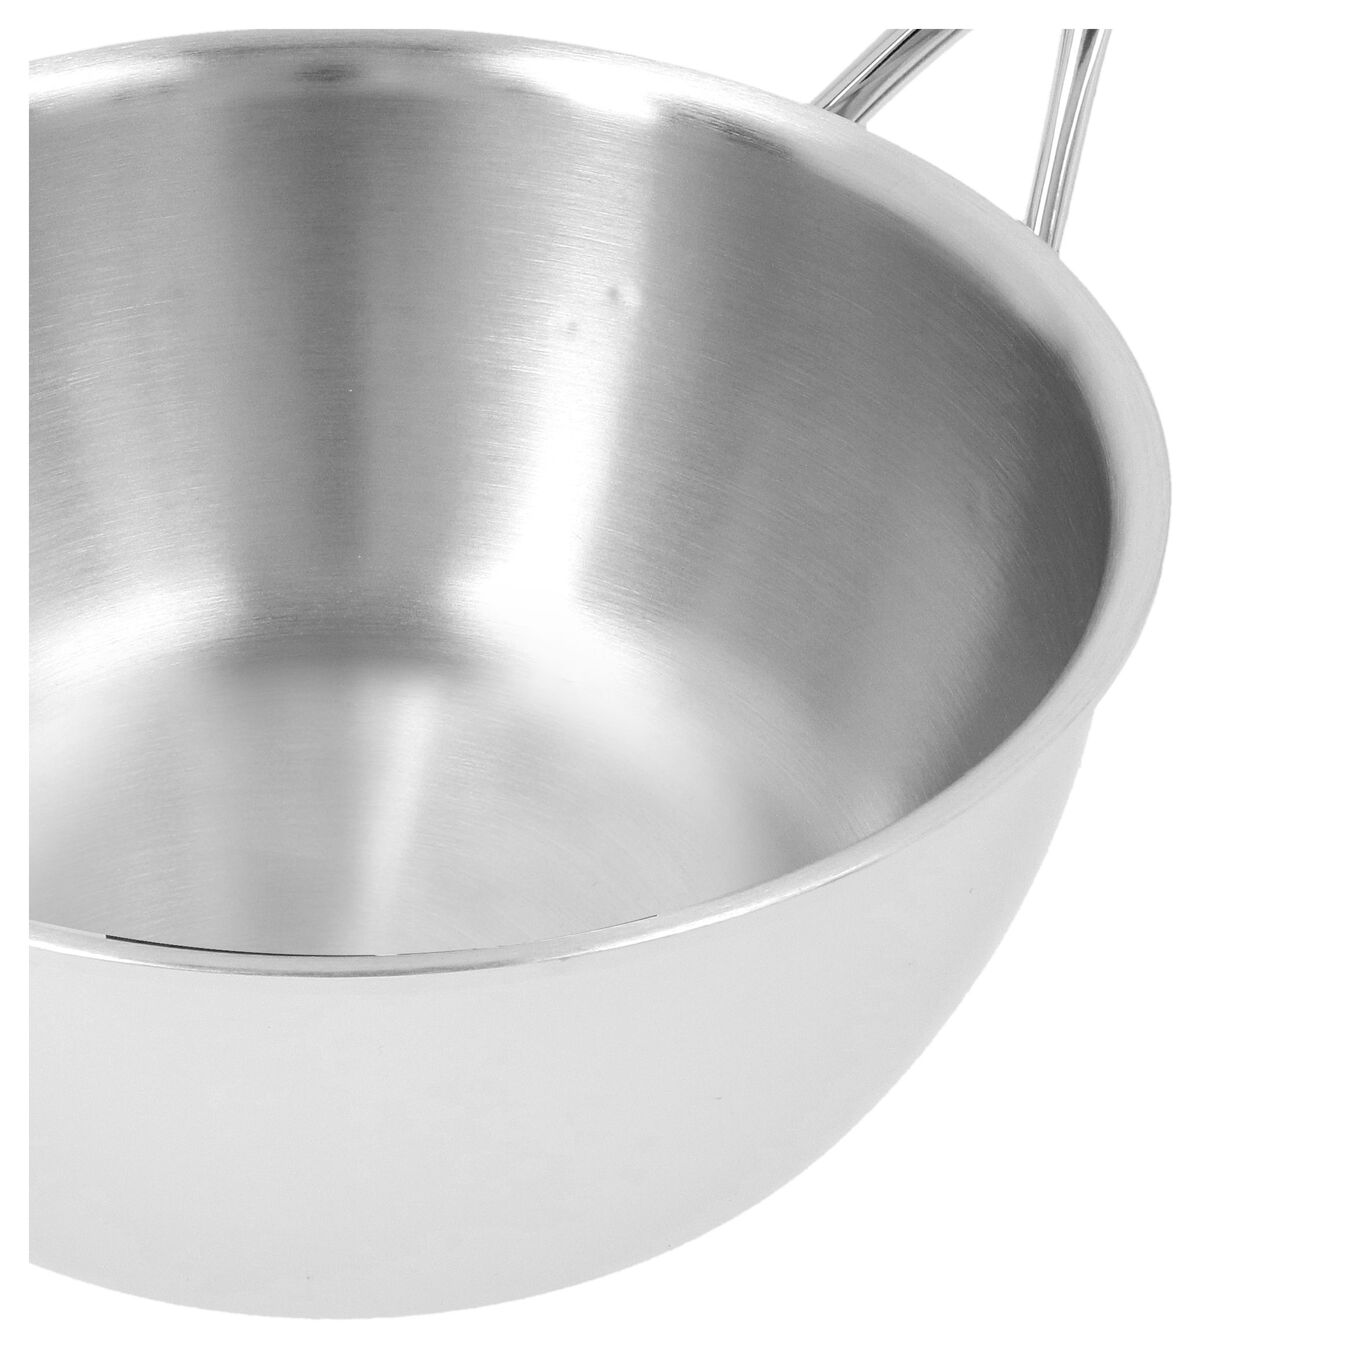 Sauteuse conique 22 cm, Inox 18/10,,large 5